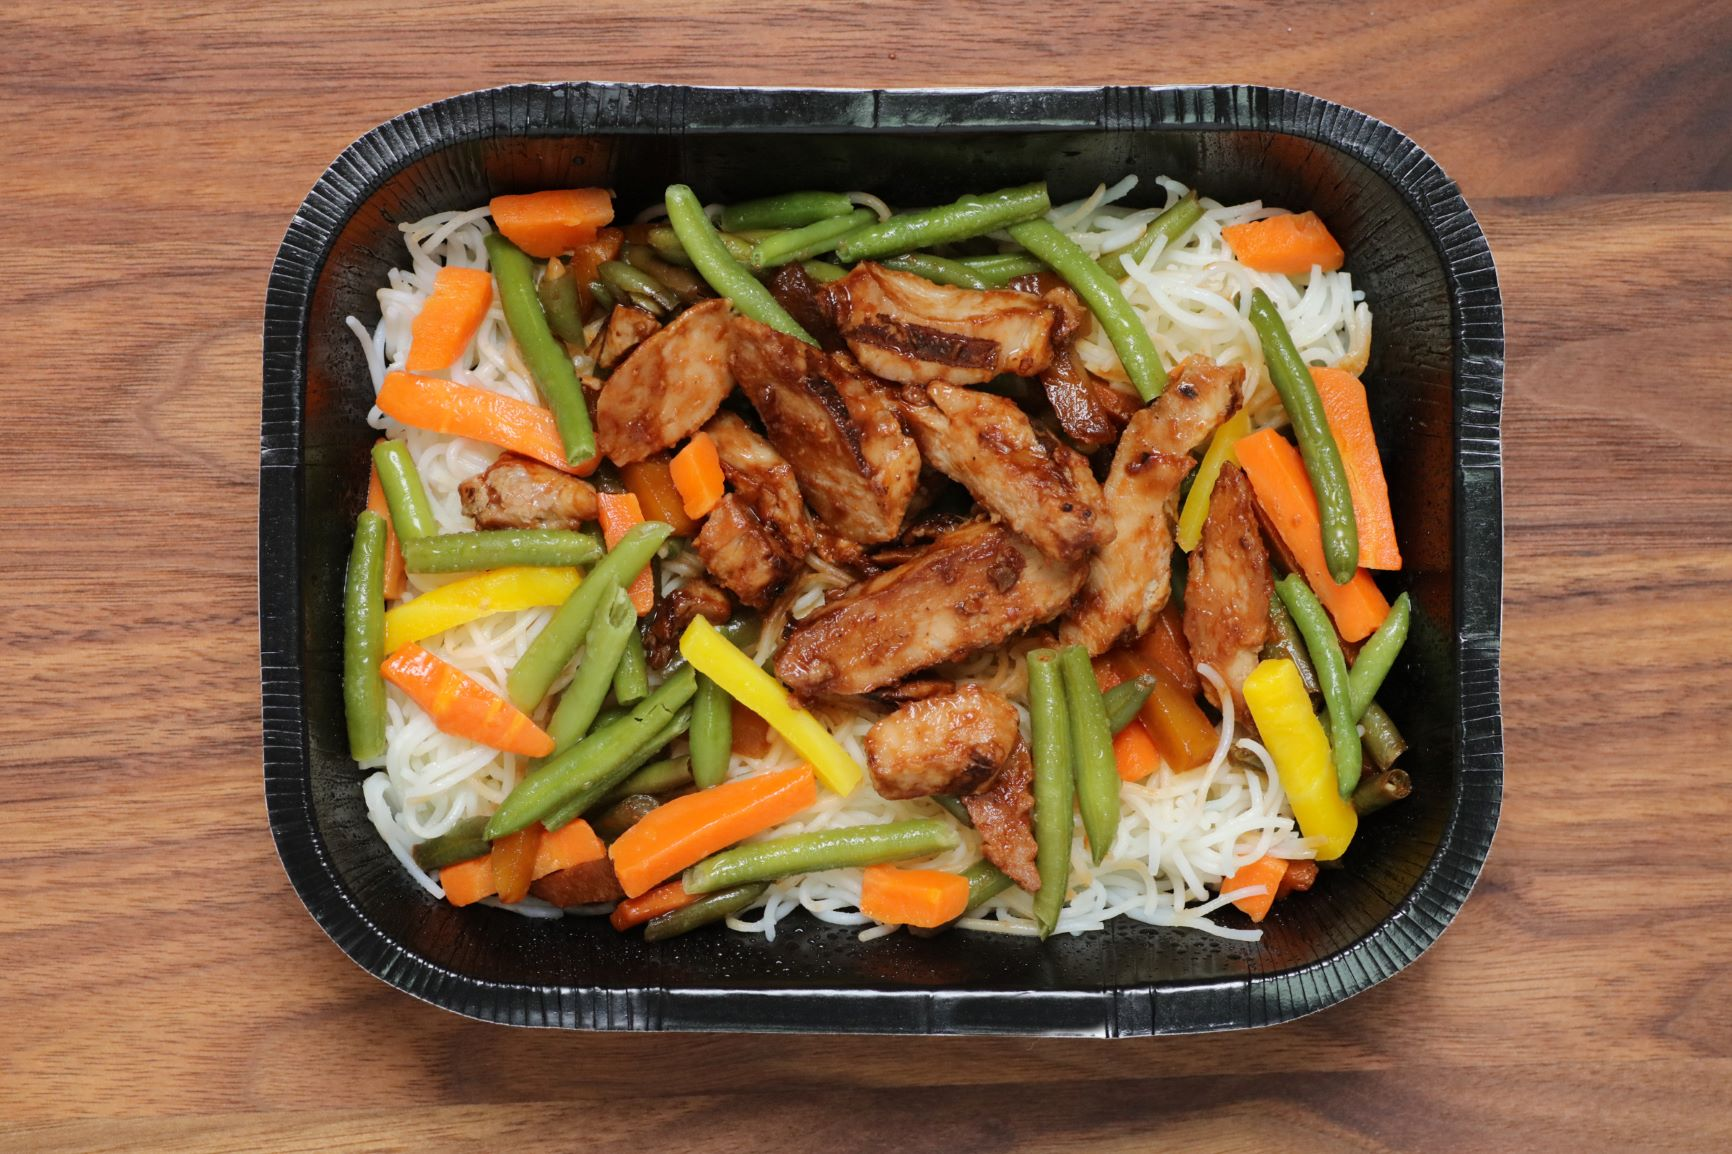 SAUTED TERIYAKI